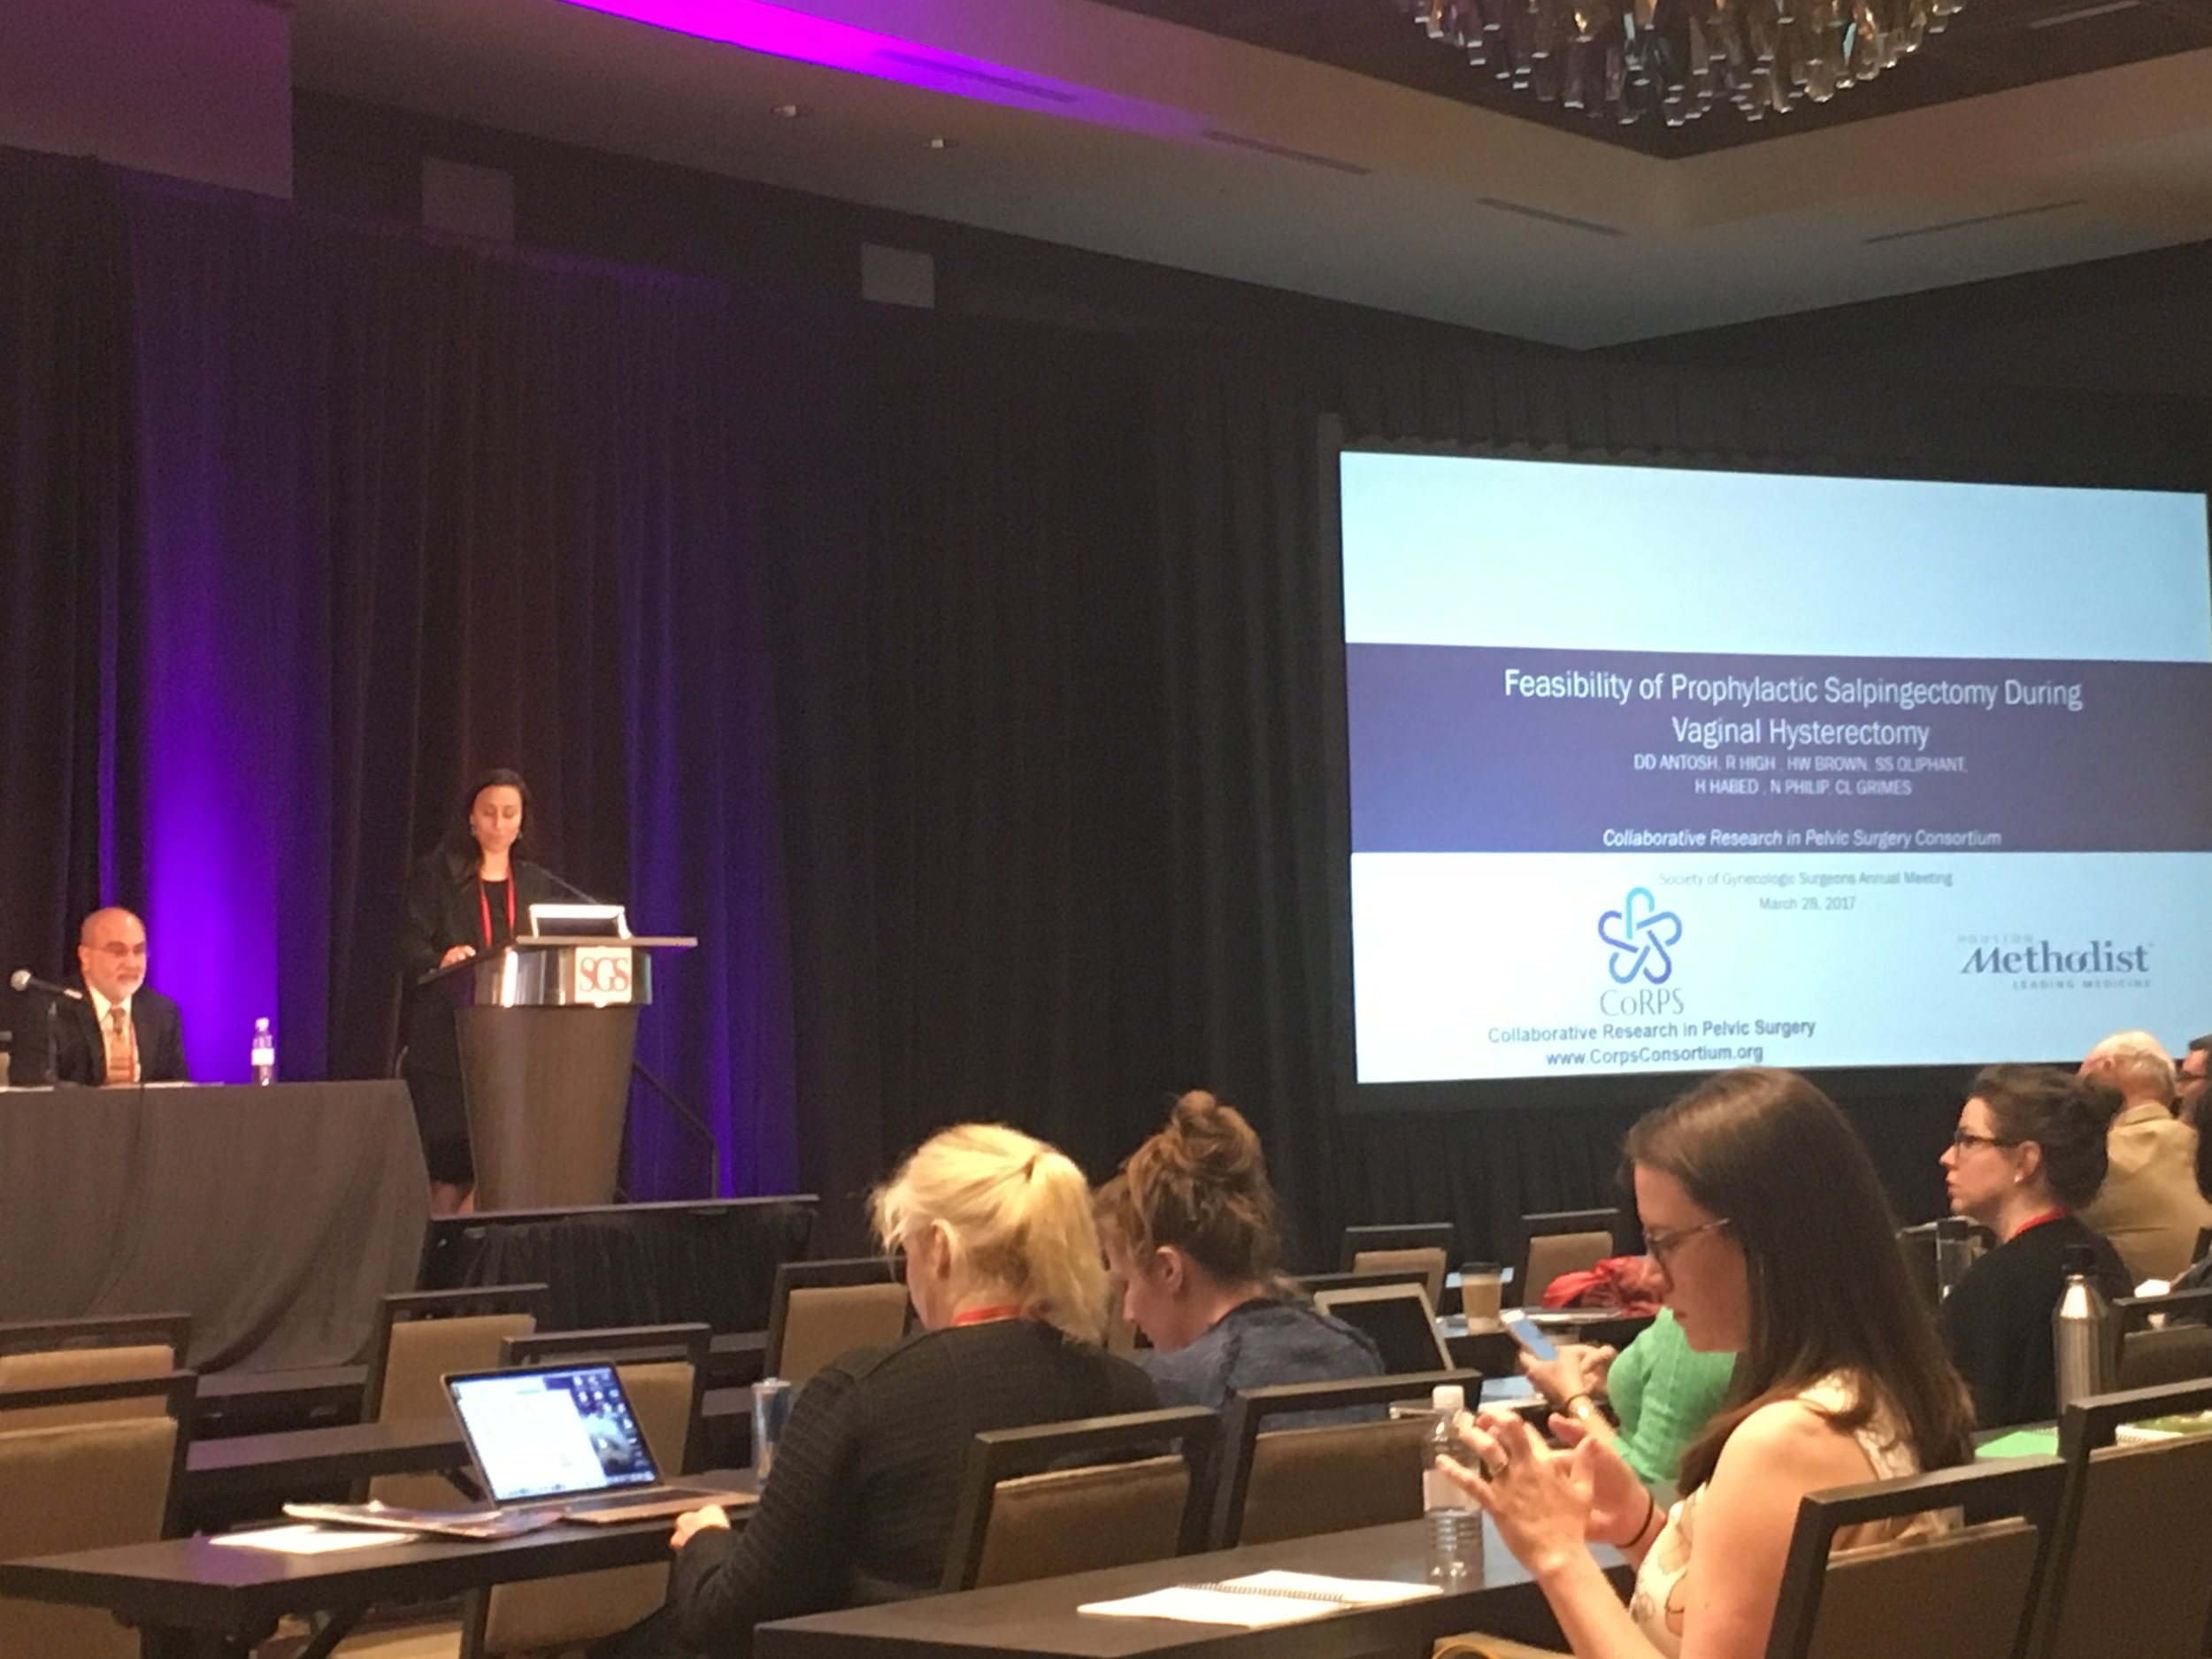 """Dr. Danielle Antosh presenting""""Feasibility of Prophylactic Salpingectomy During Vaginal Hysterectomy"""" @ SGS 2017, San Antonio, TEXAS"""